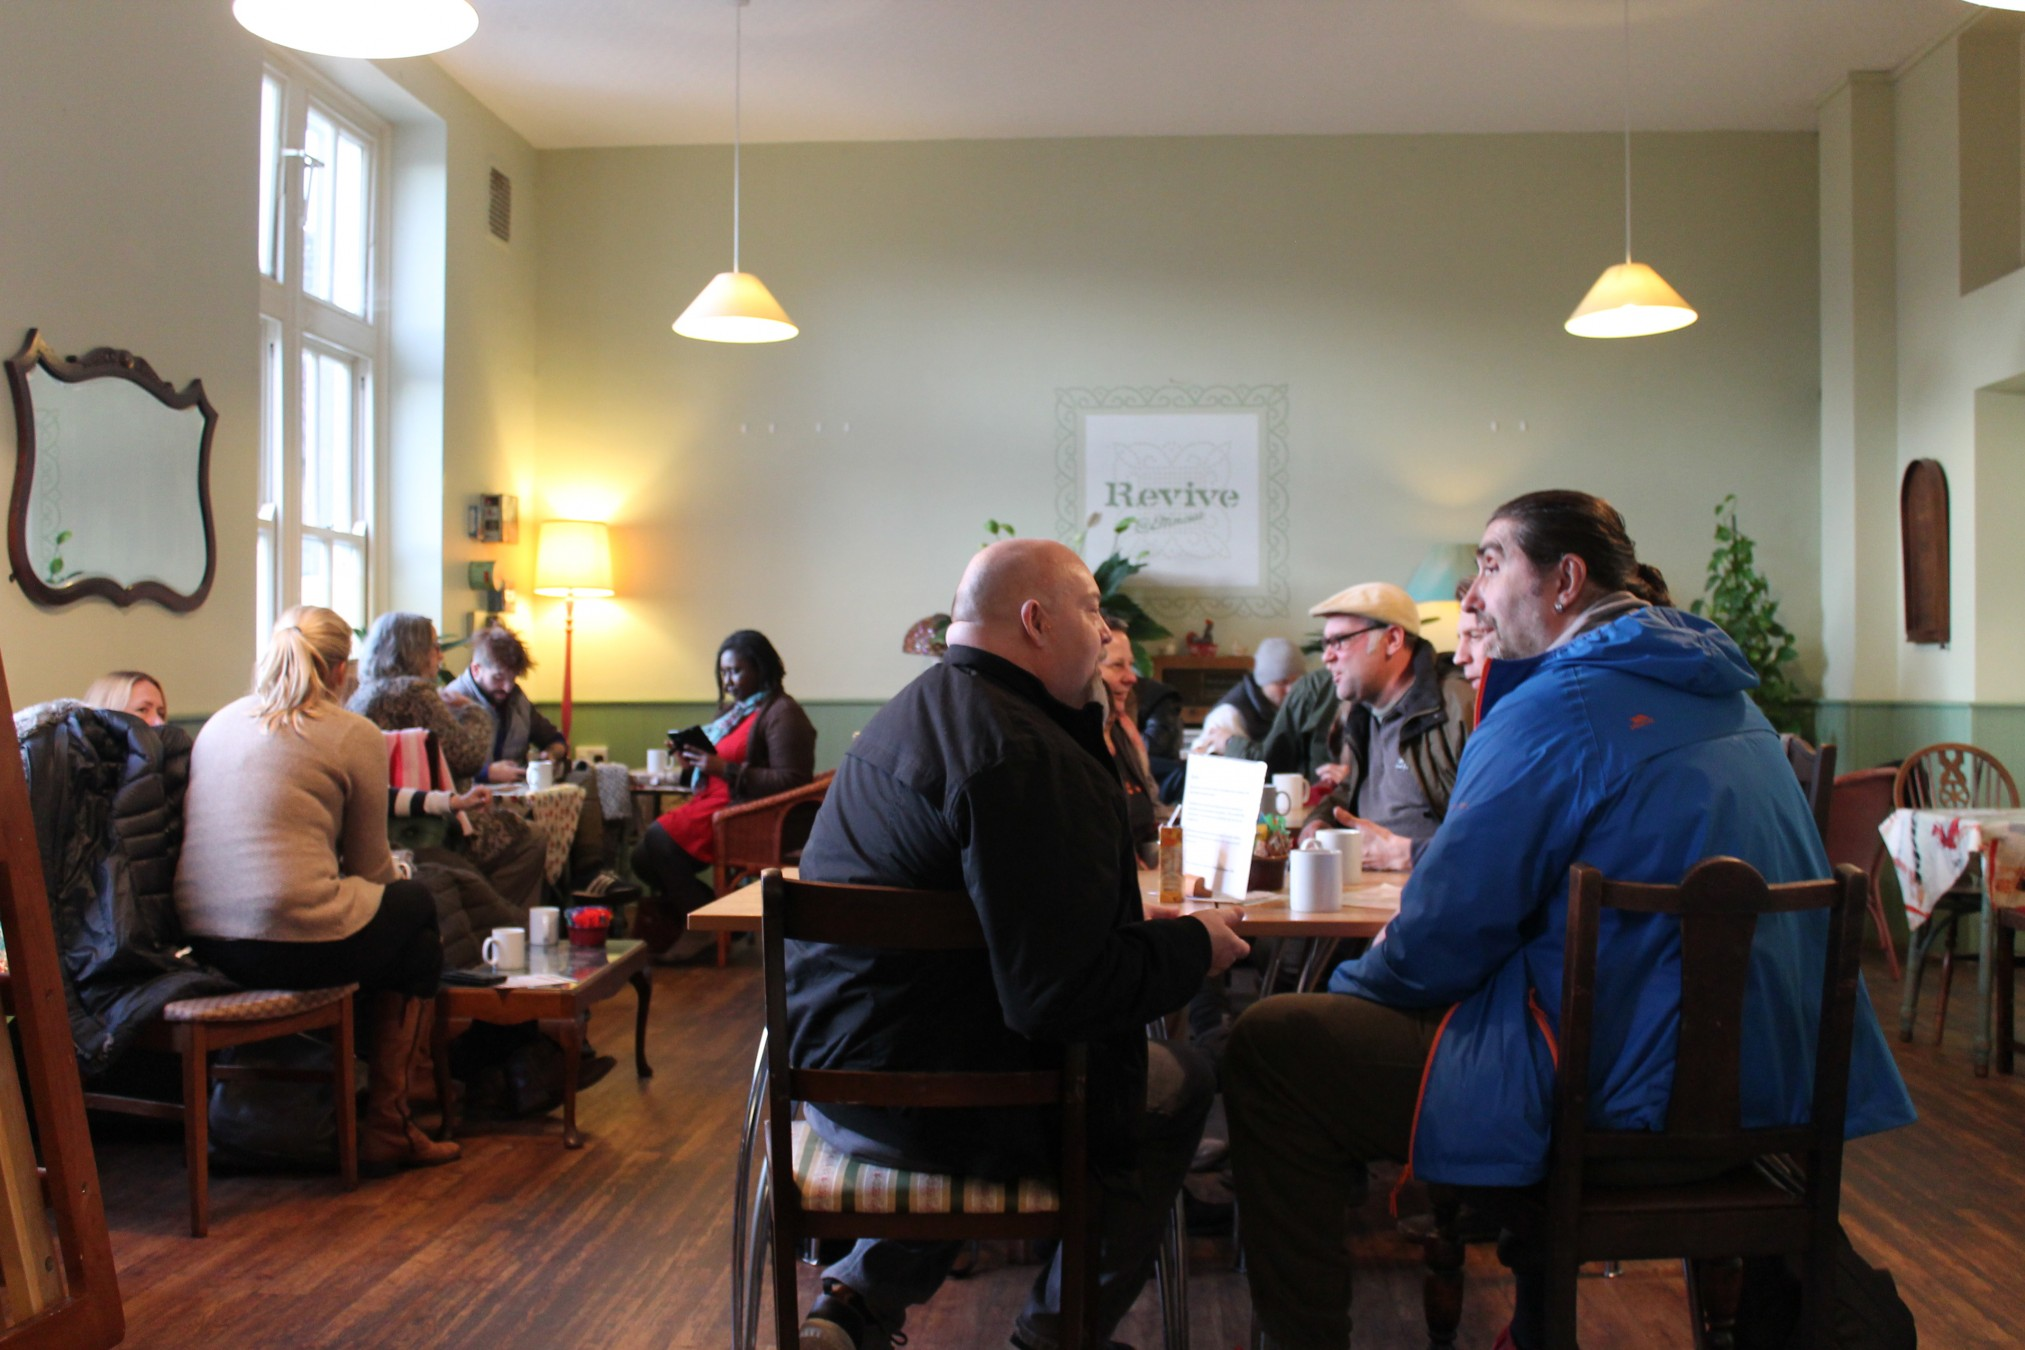 People from Brighton sitting at cafe style tables around a room with high ceilings